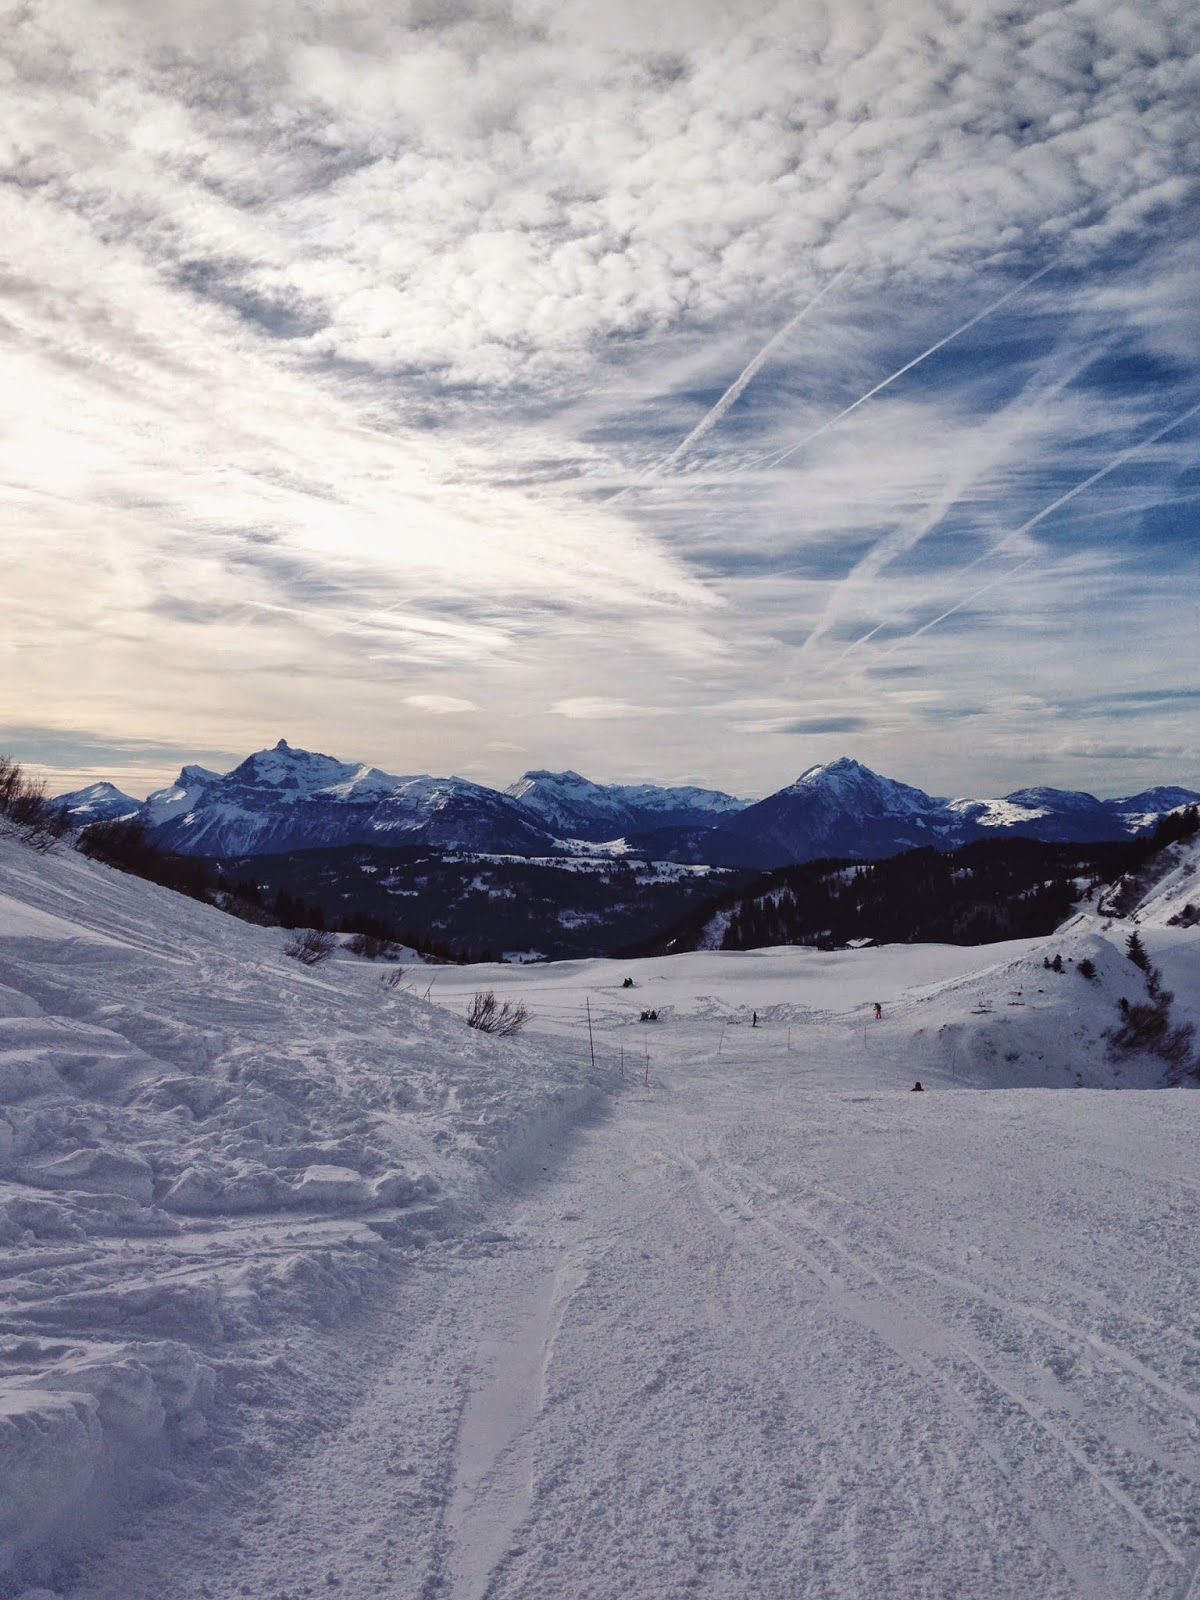 Les Gets, Morzine, clouds, view, beautiful, vsco, snow